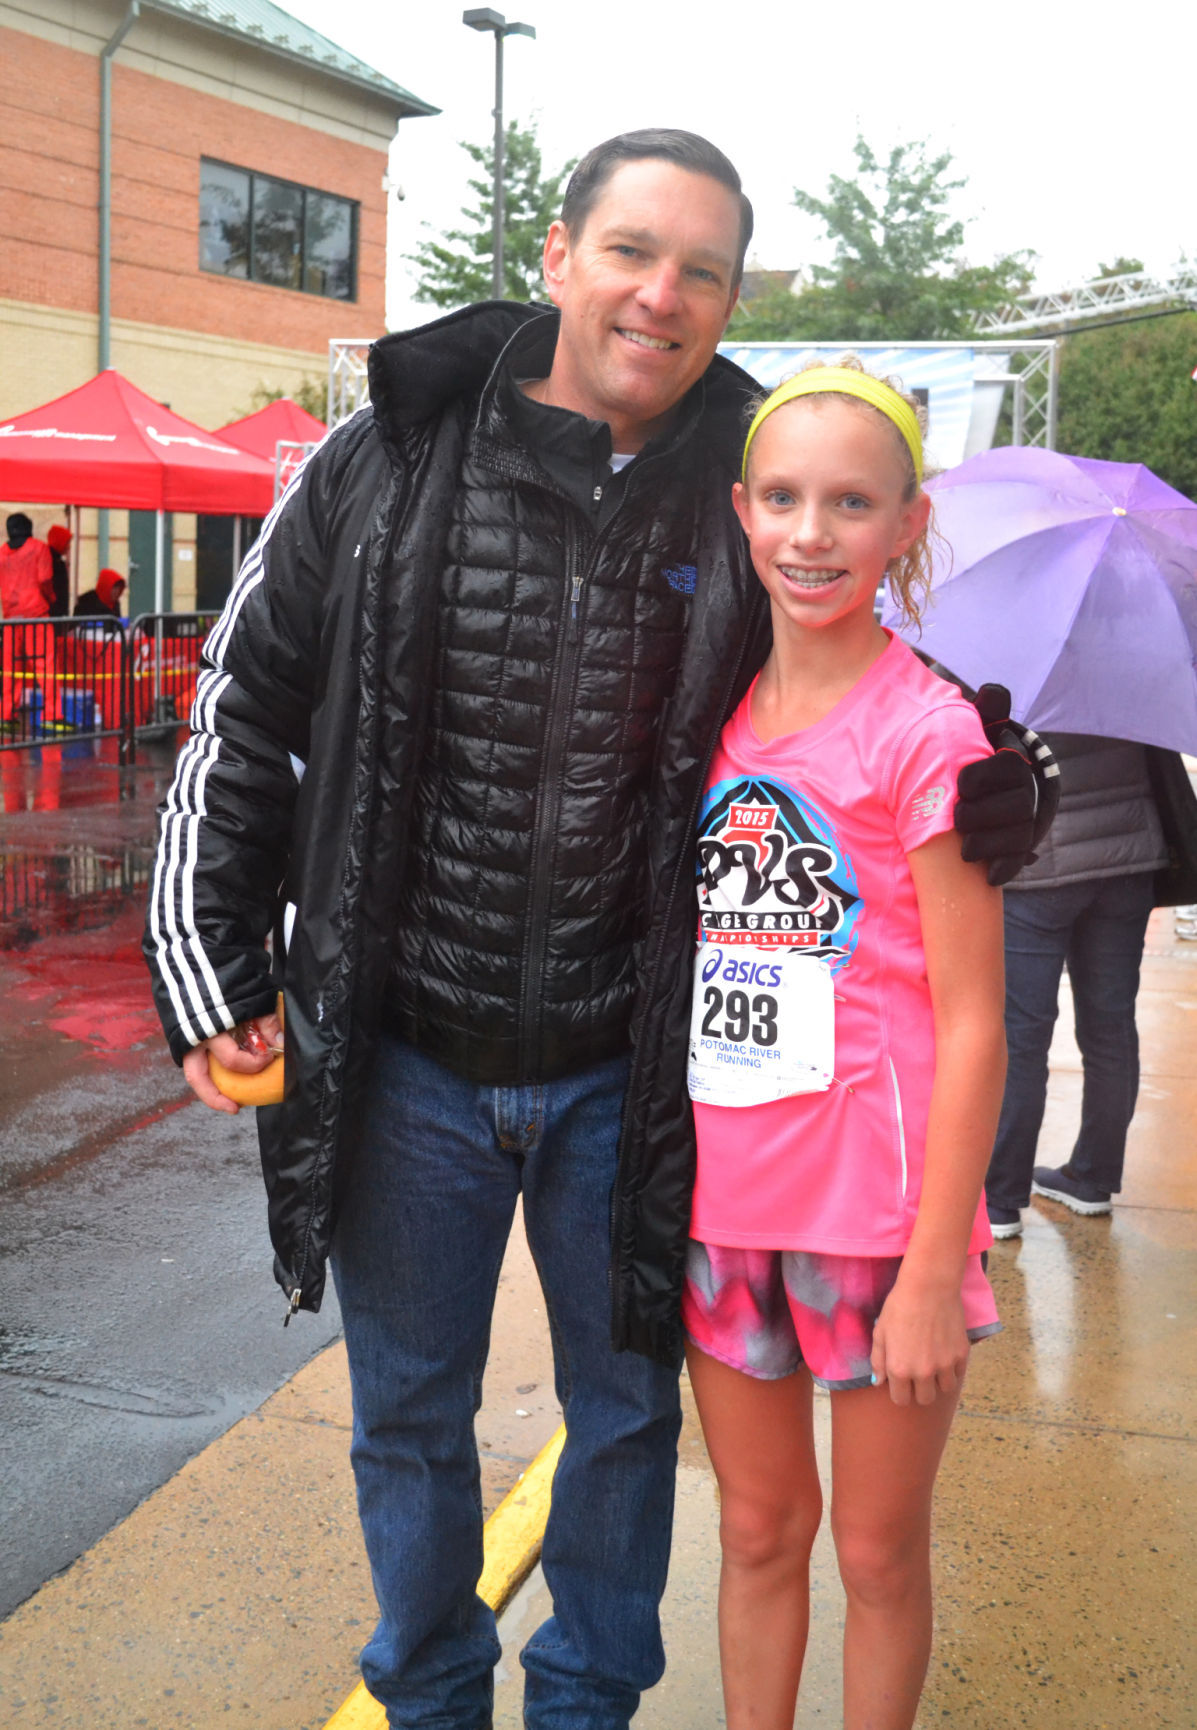 Participants Take On Downpours To Run With The Warriors